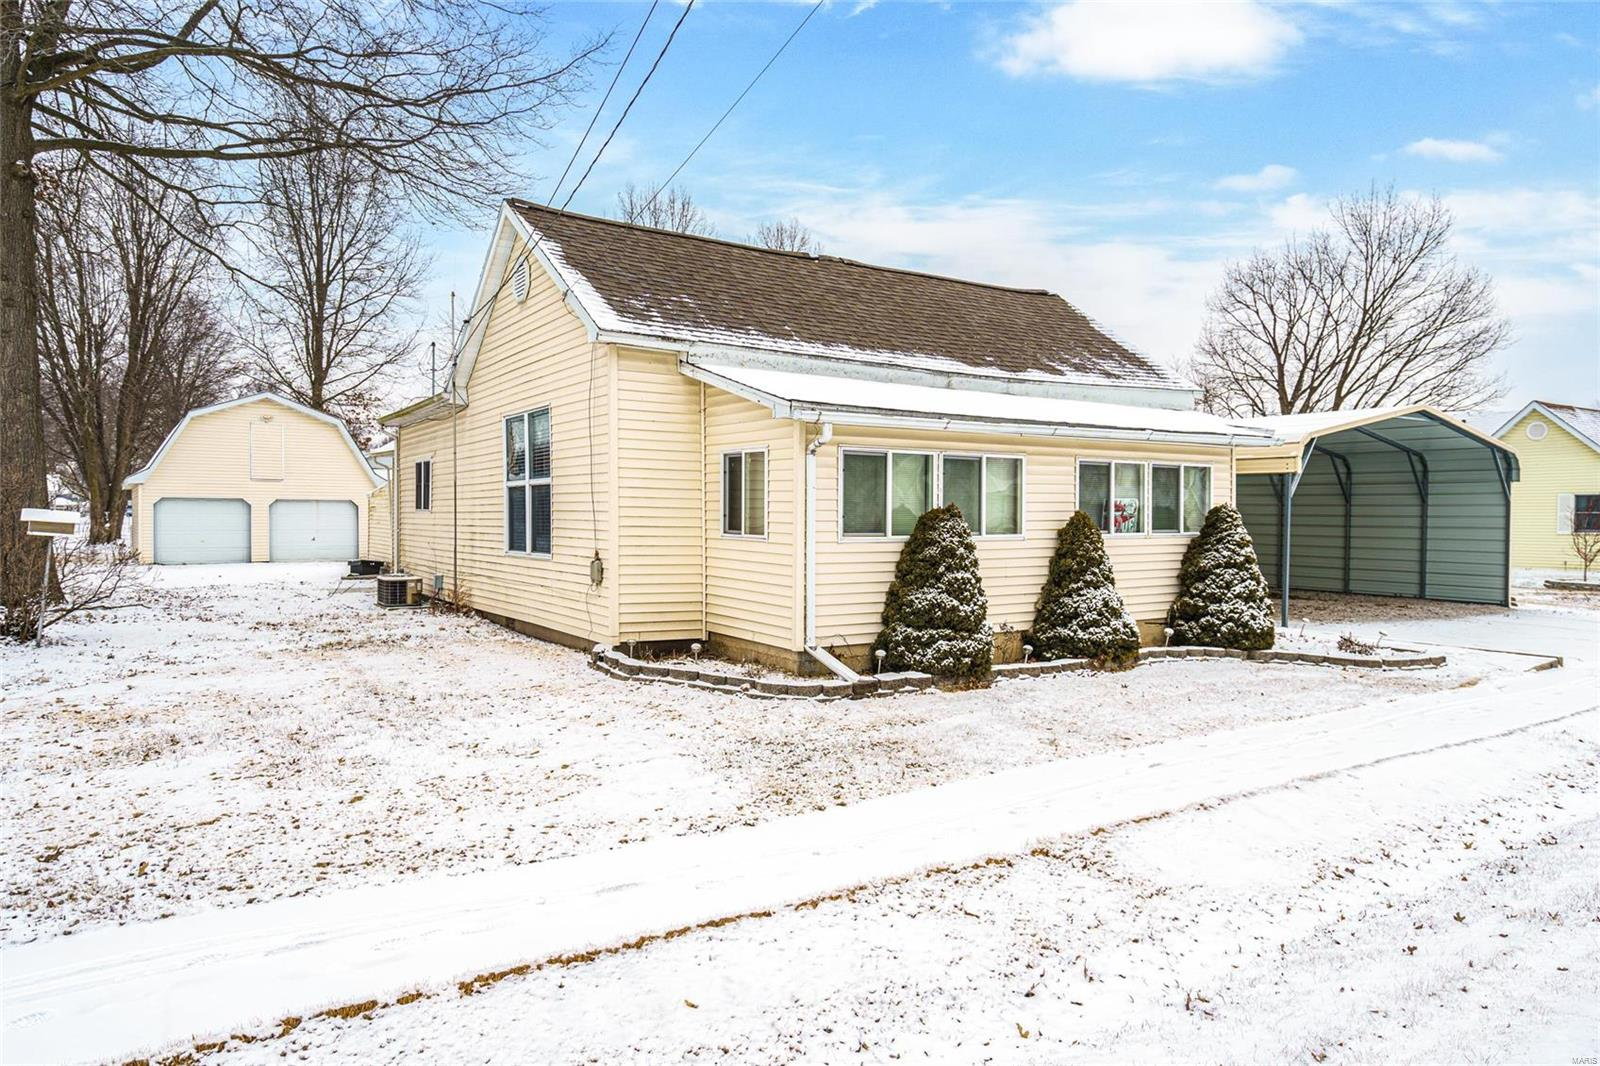 803 E Olive Property Photo - Staunton, IL real estate listing